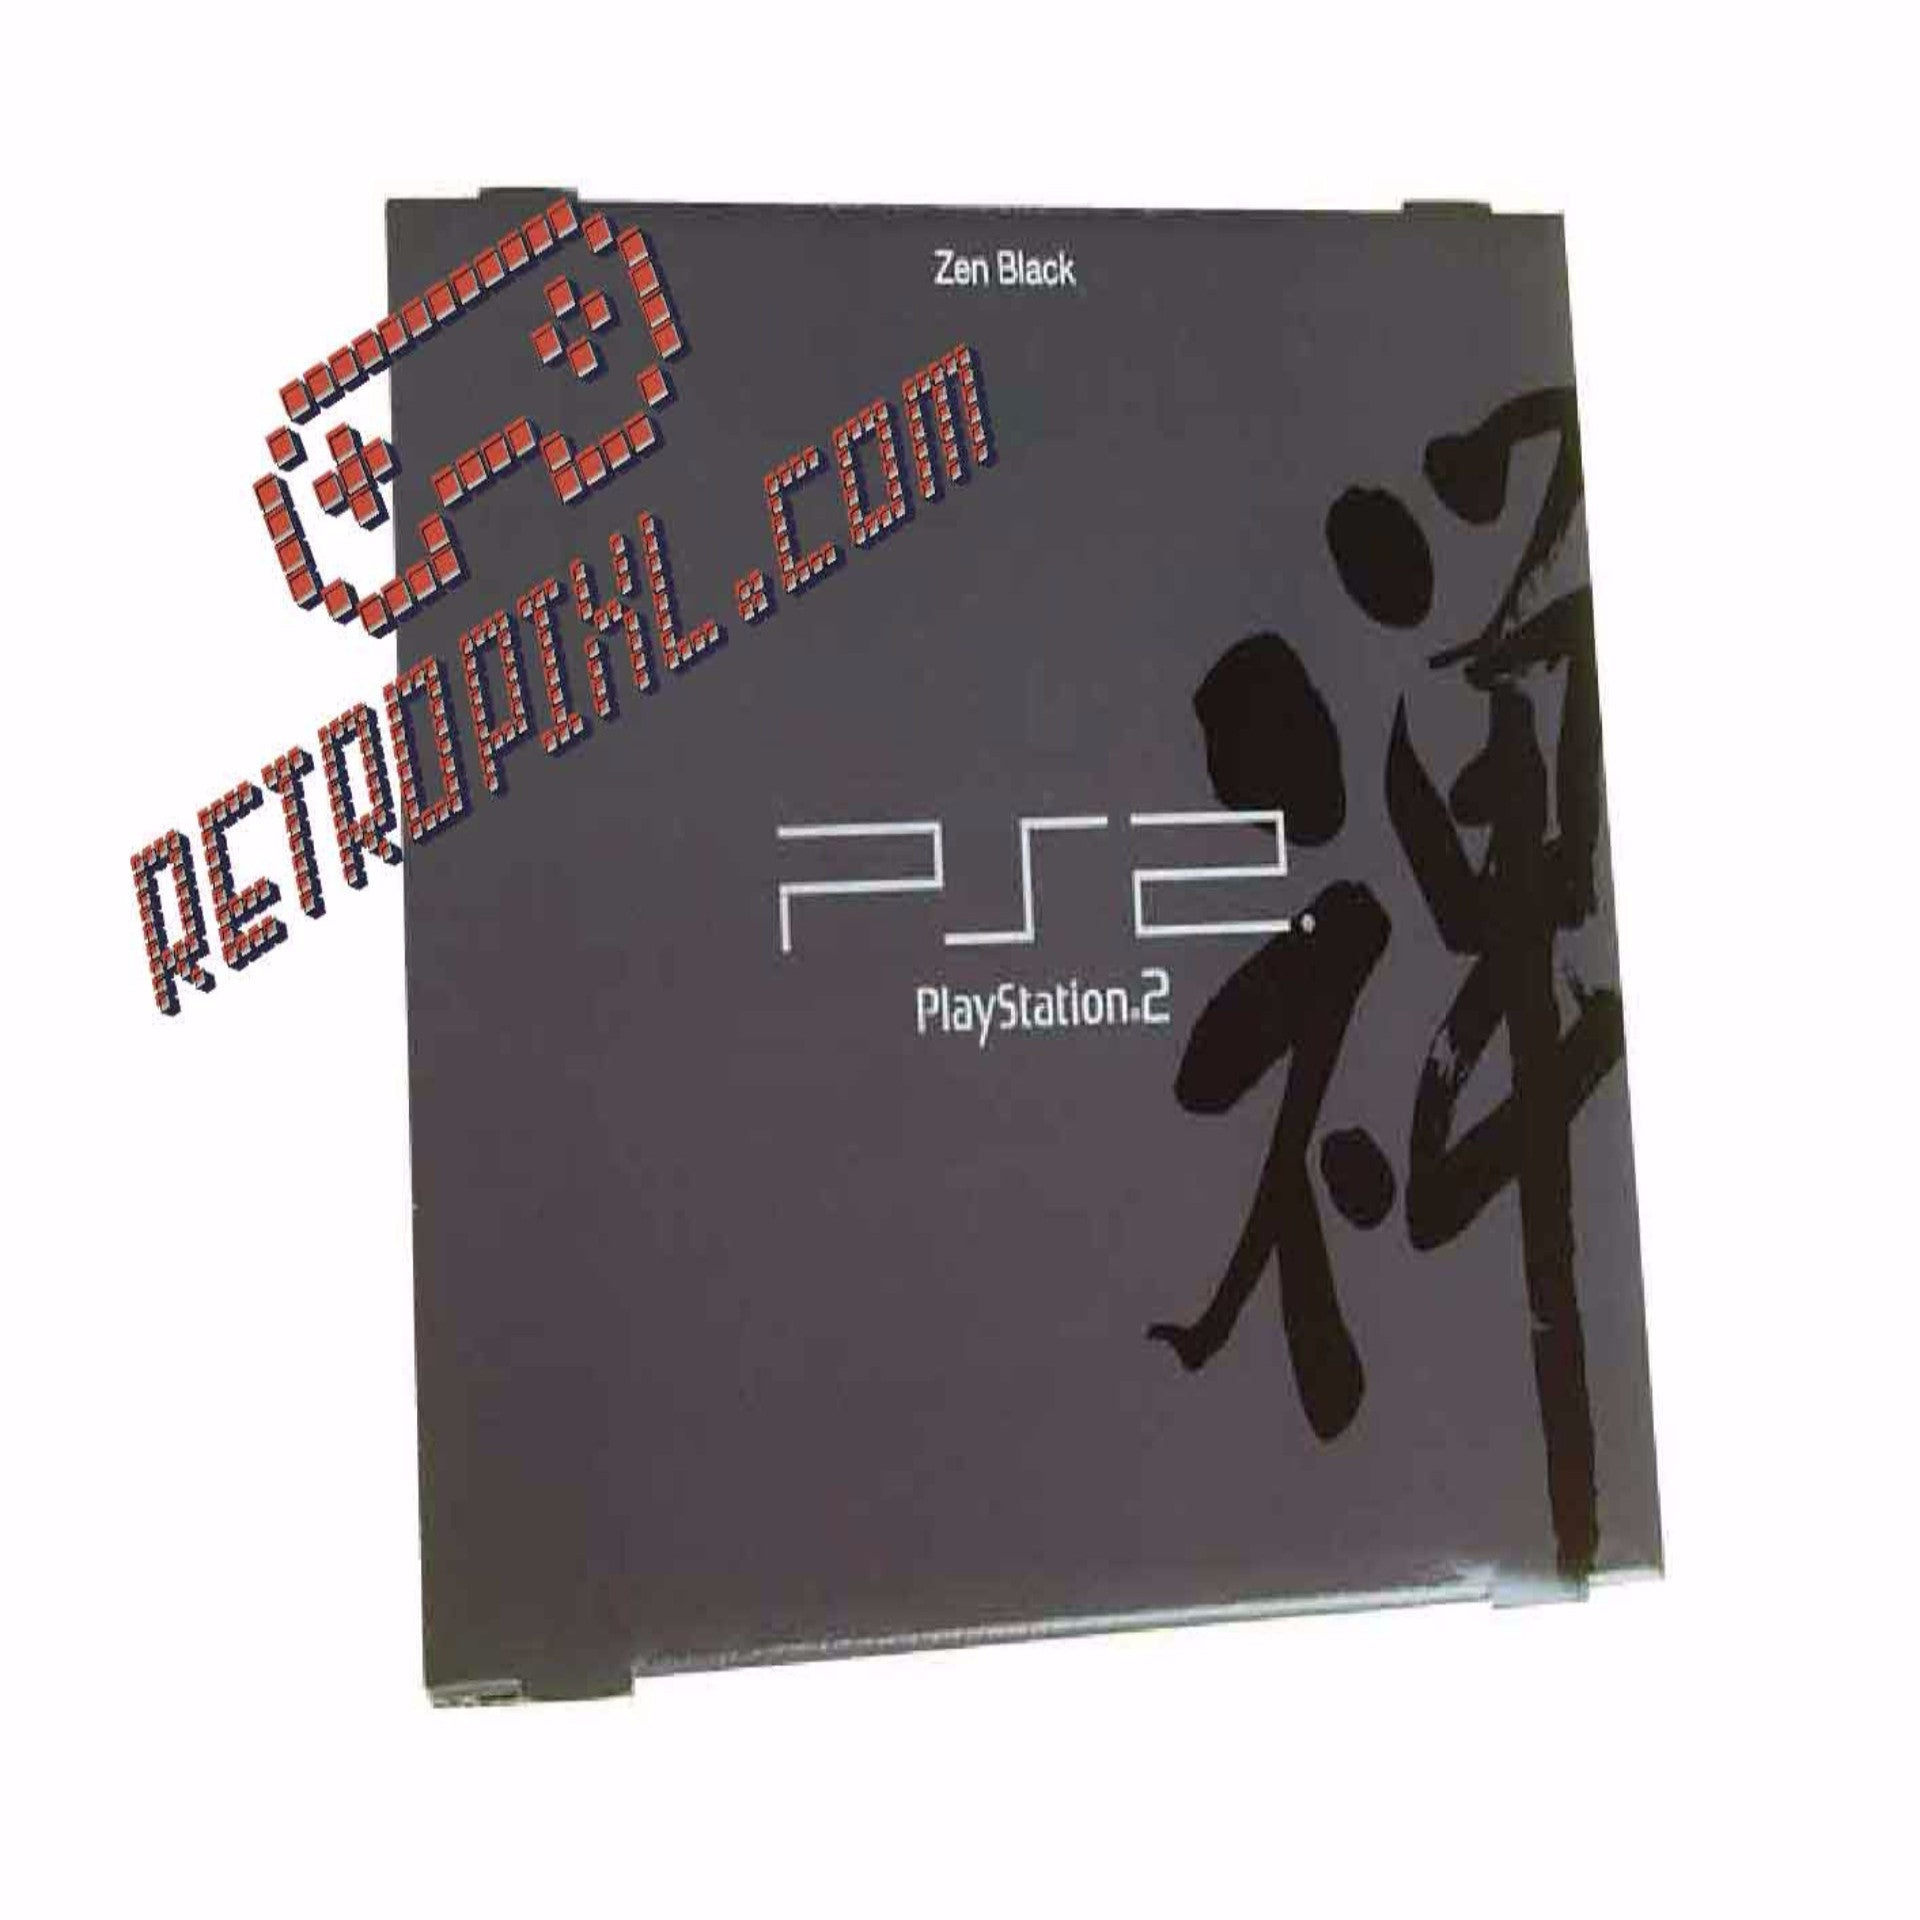 Sony Playstation 2 Zen Black LIMITED EDITION